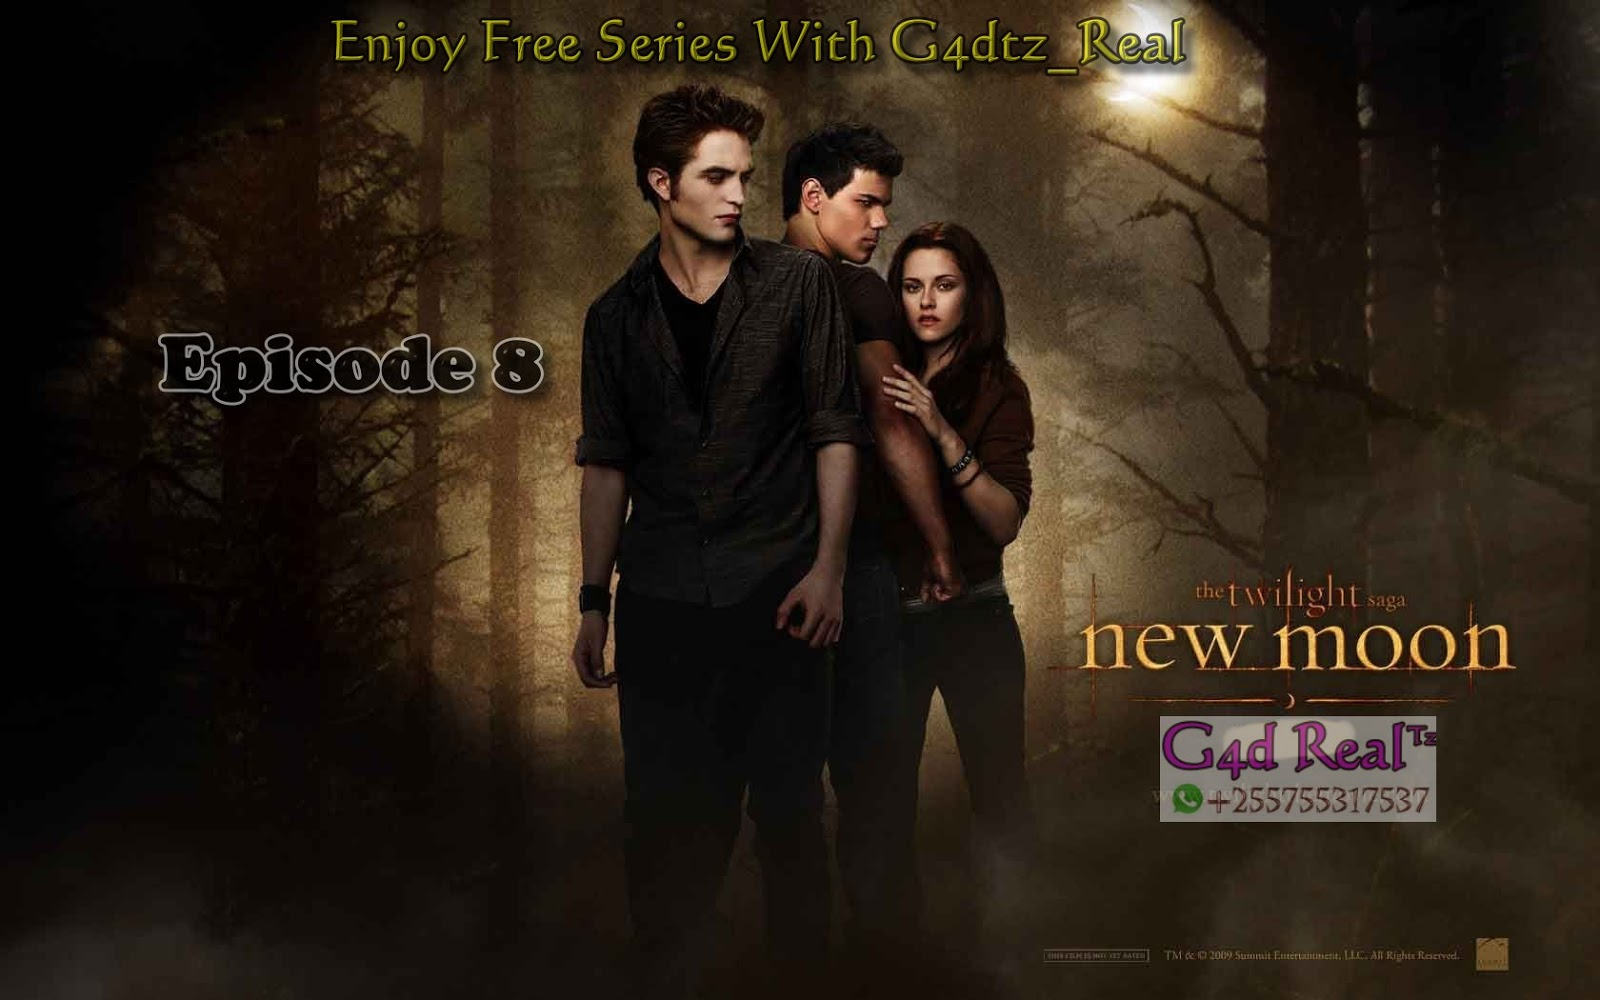 twilight saga series download